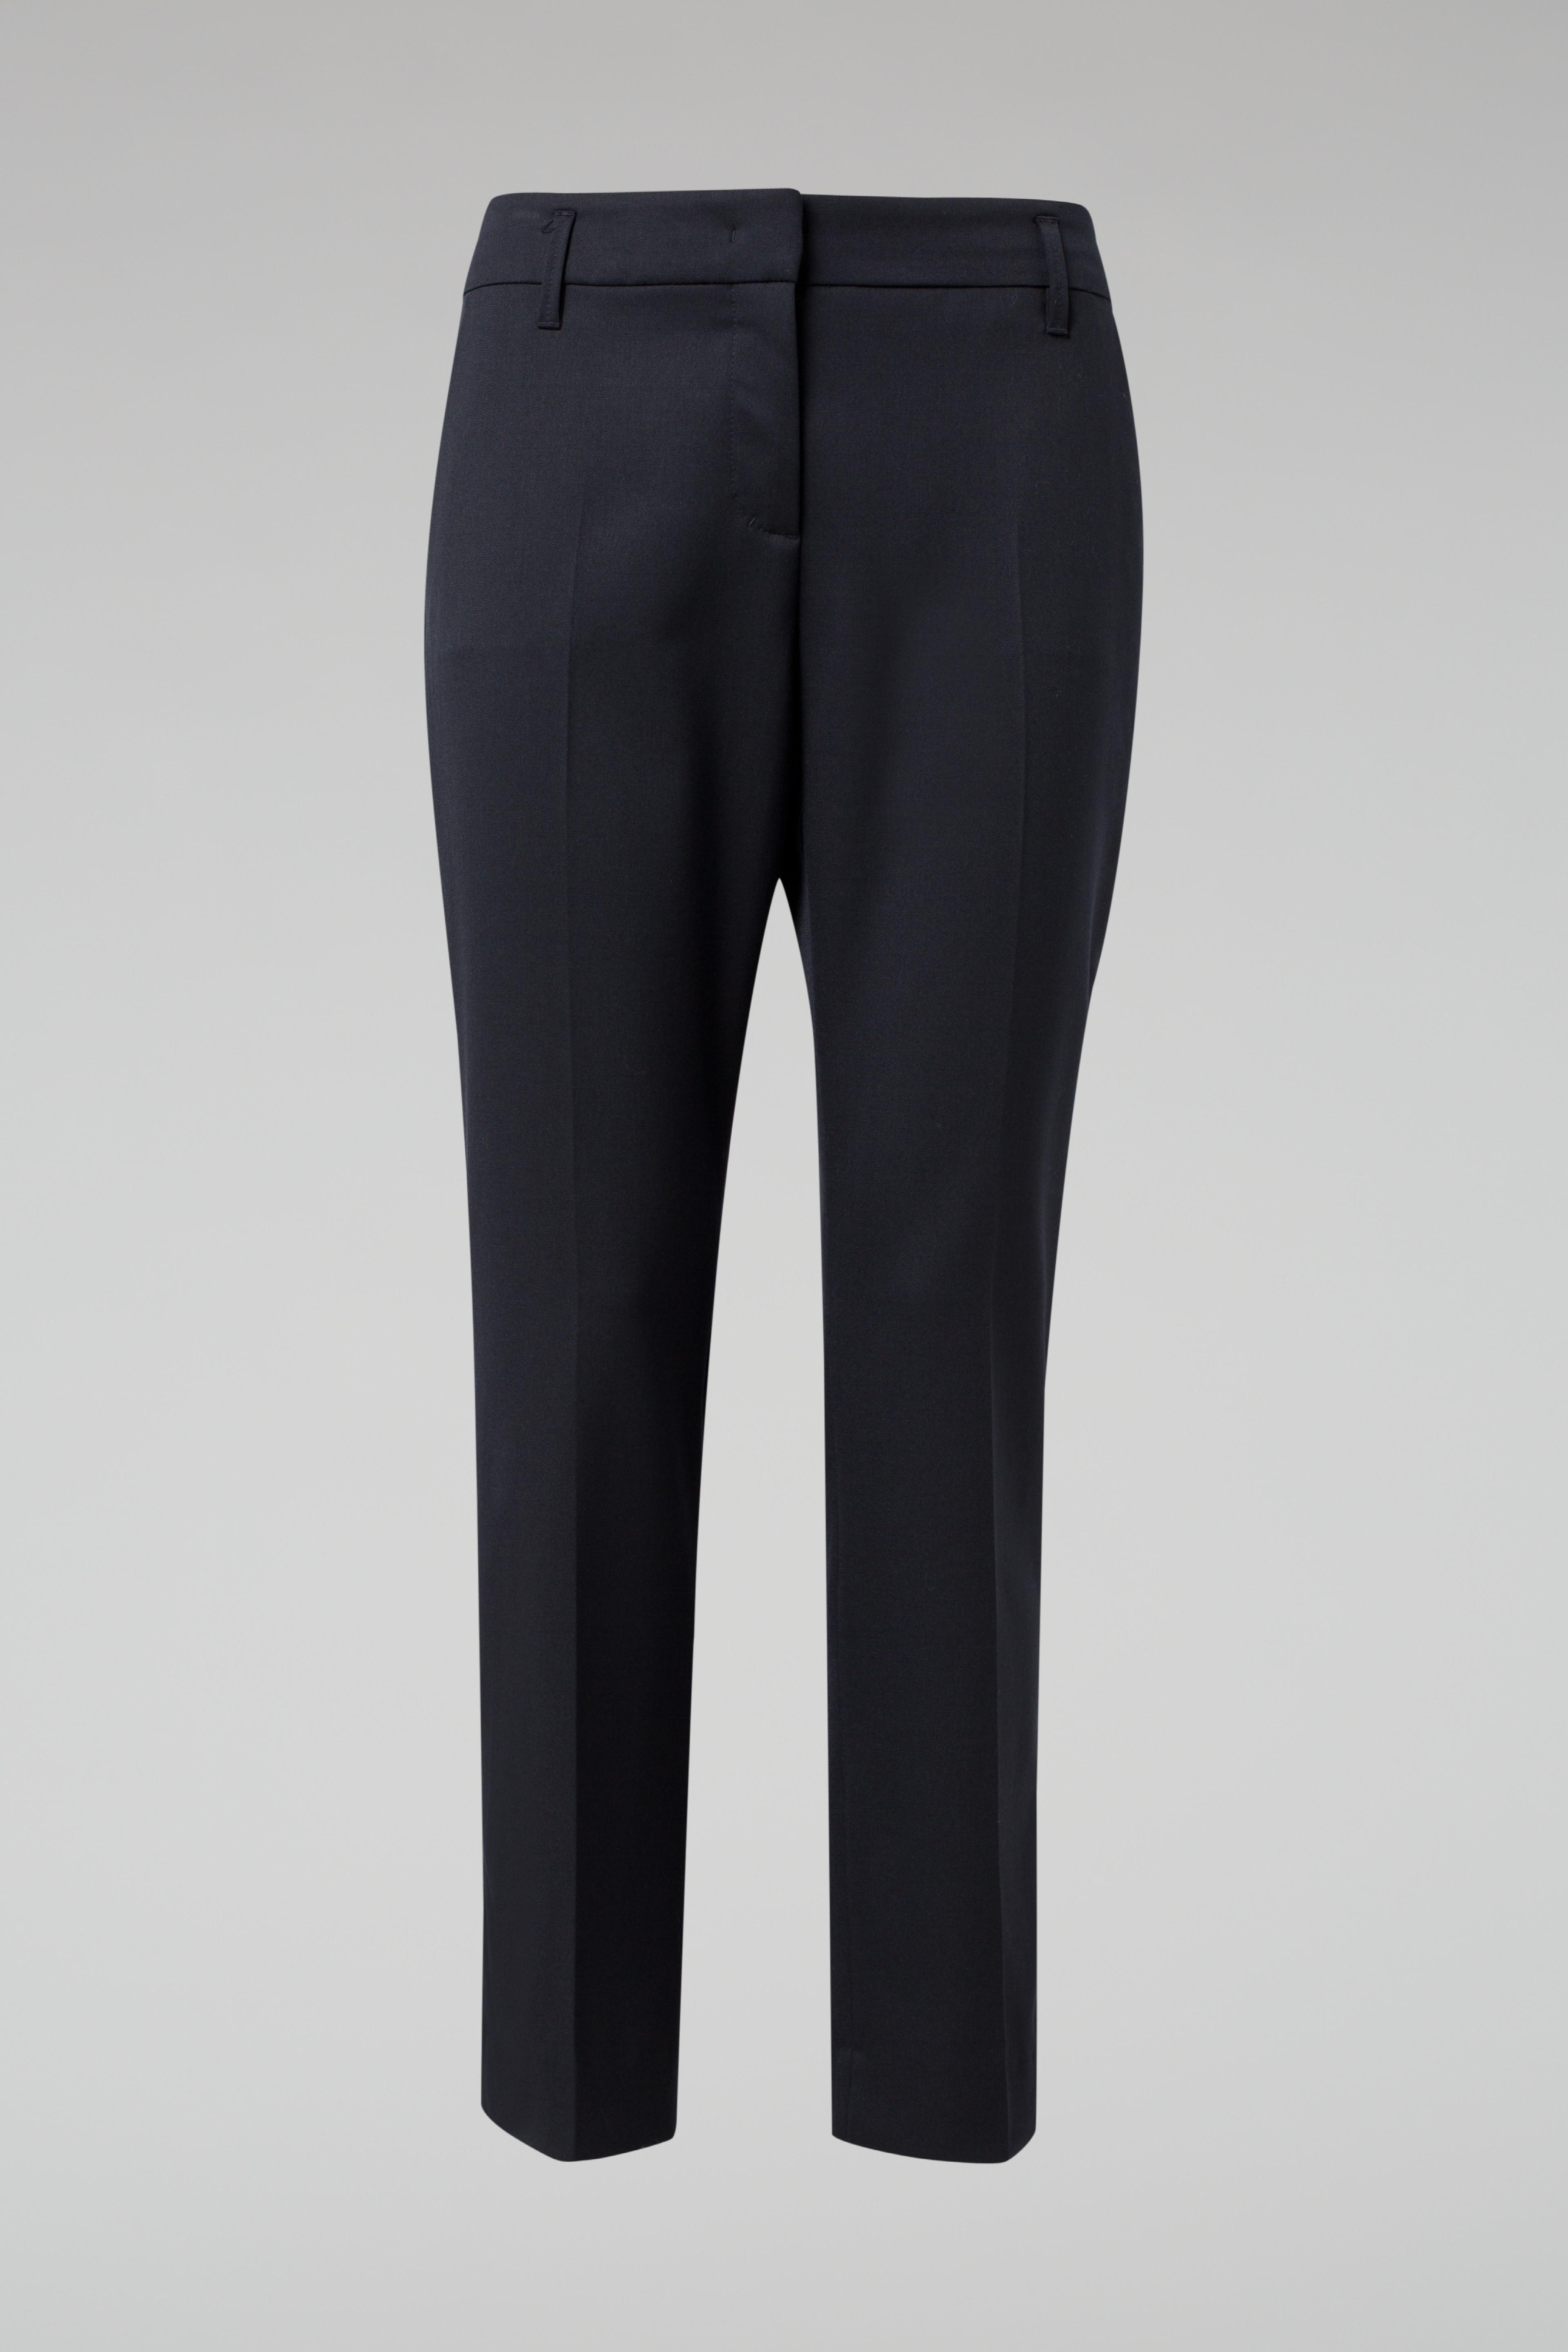 COOL AMBITION classic loose fit pants with satinpiping 4 Dorothee Schumacher